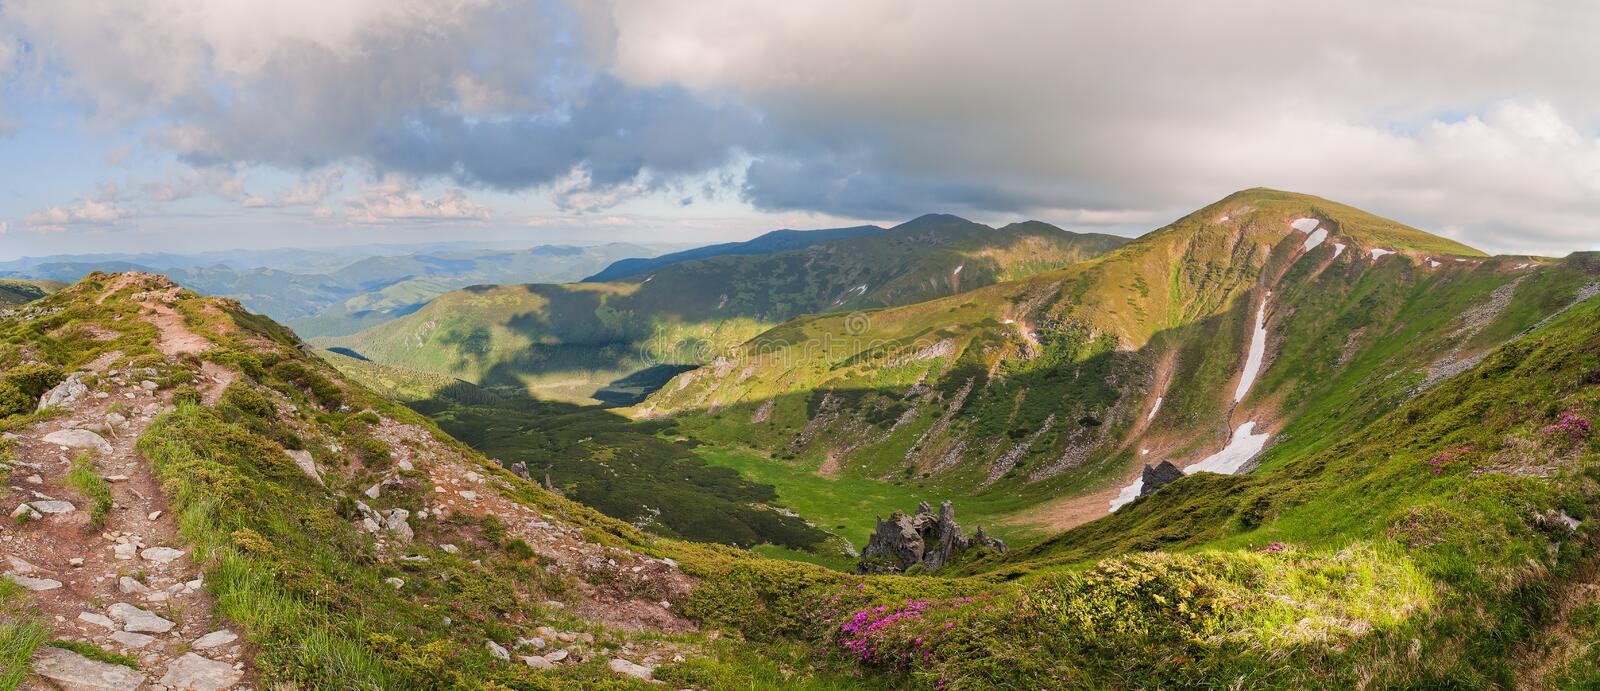 Magic pink rhododendron flowers on summer mountain. Dramatic scenery. Carpathian, Ukraine, Europe. royalty free stock images